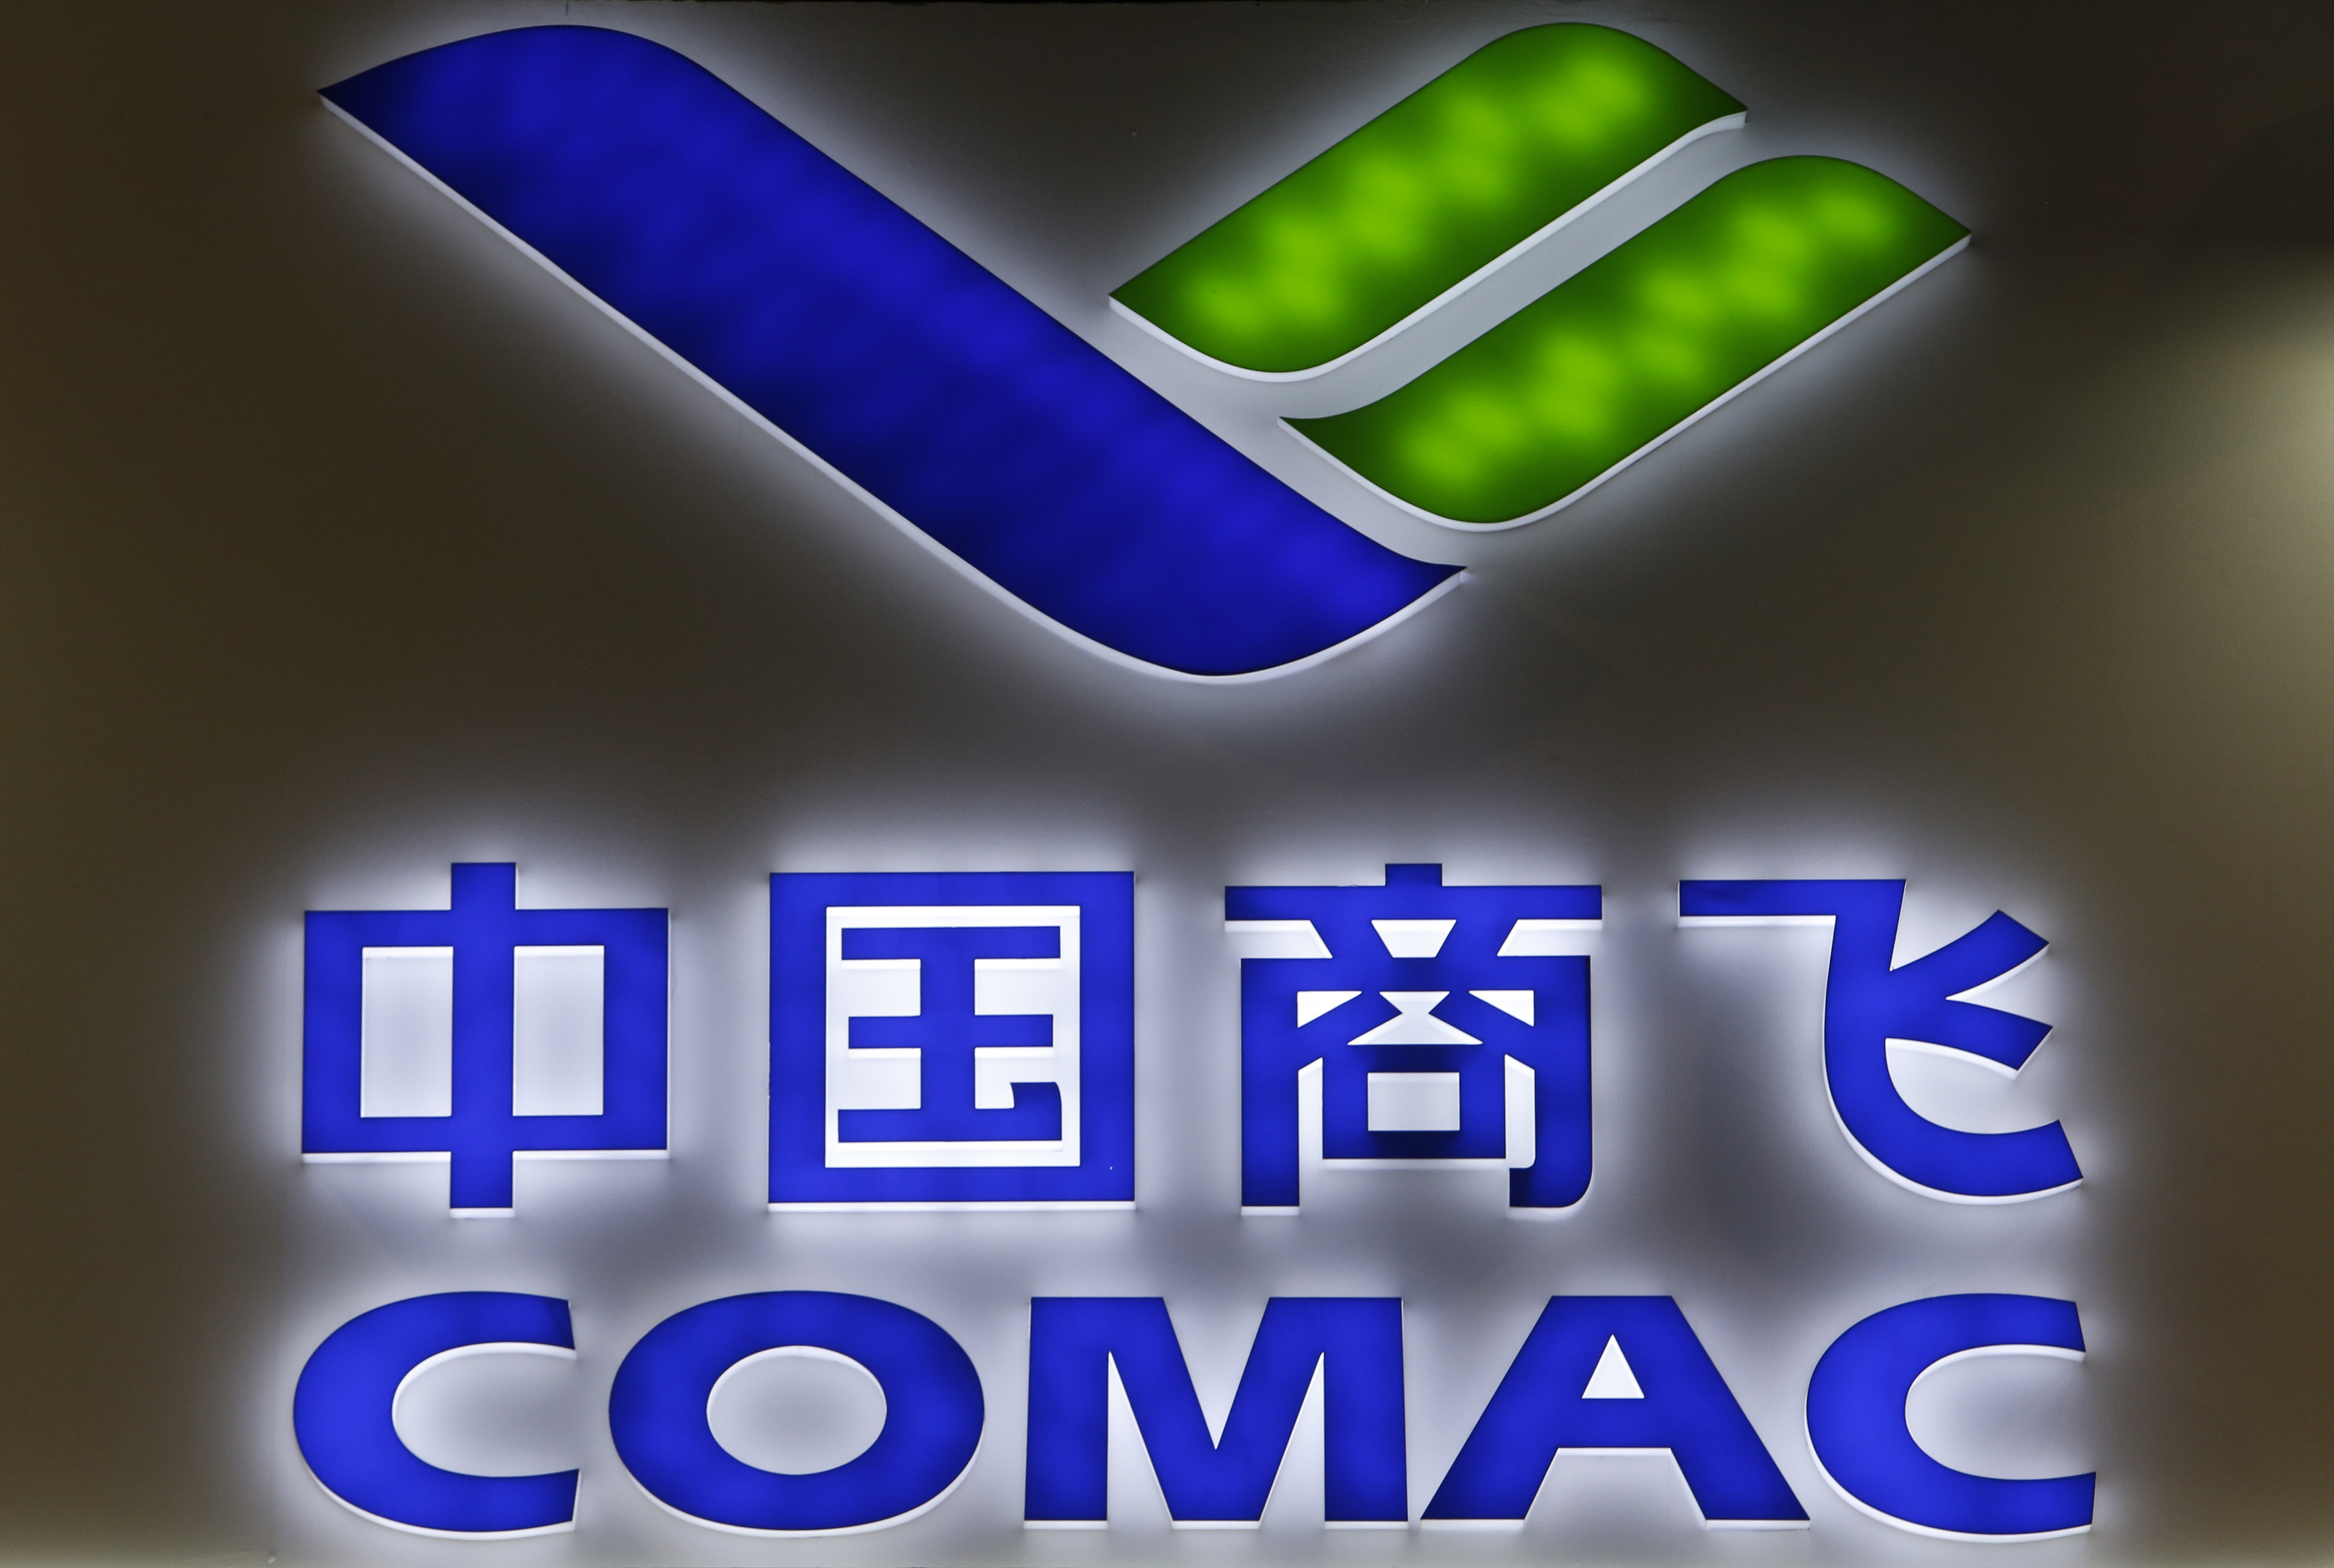 A Commercial Aircraft Corporation of China (COMAC) logo is pictured at their booth at the Singapore Airshow February 12, 2014. REUTERS/Edgar Su/File Photo